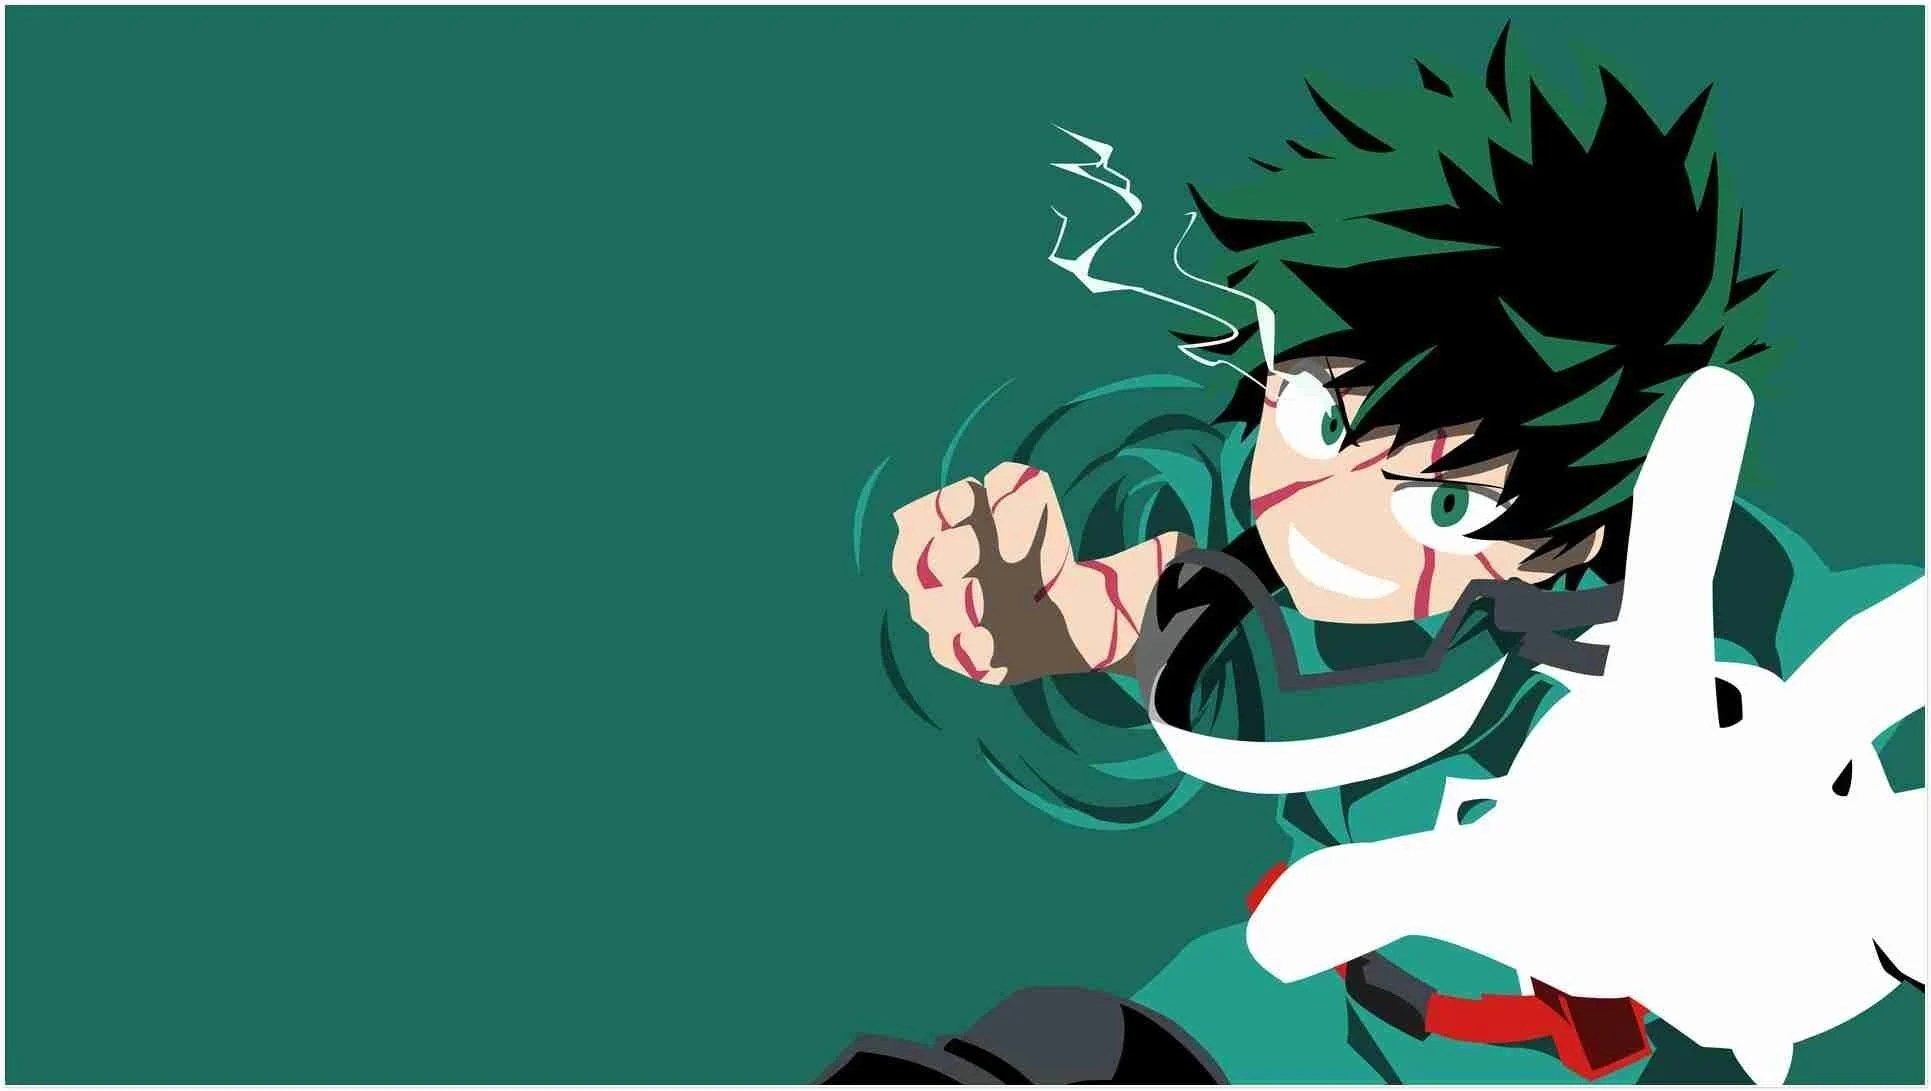   1920x1200 px · my. Deku Aesthetic PC Wallpapers - Wallpaper Cave